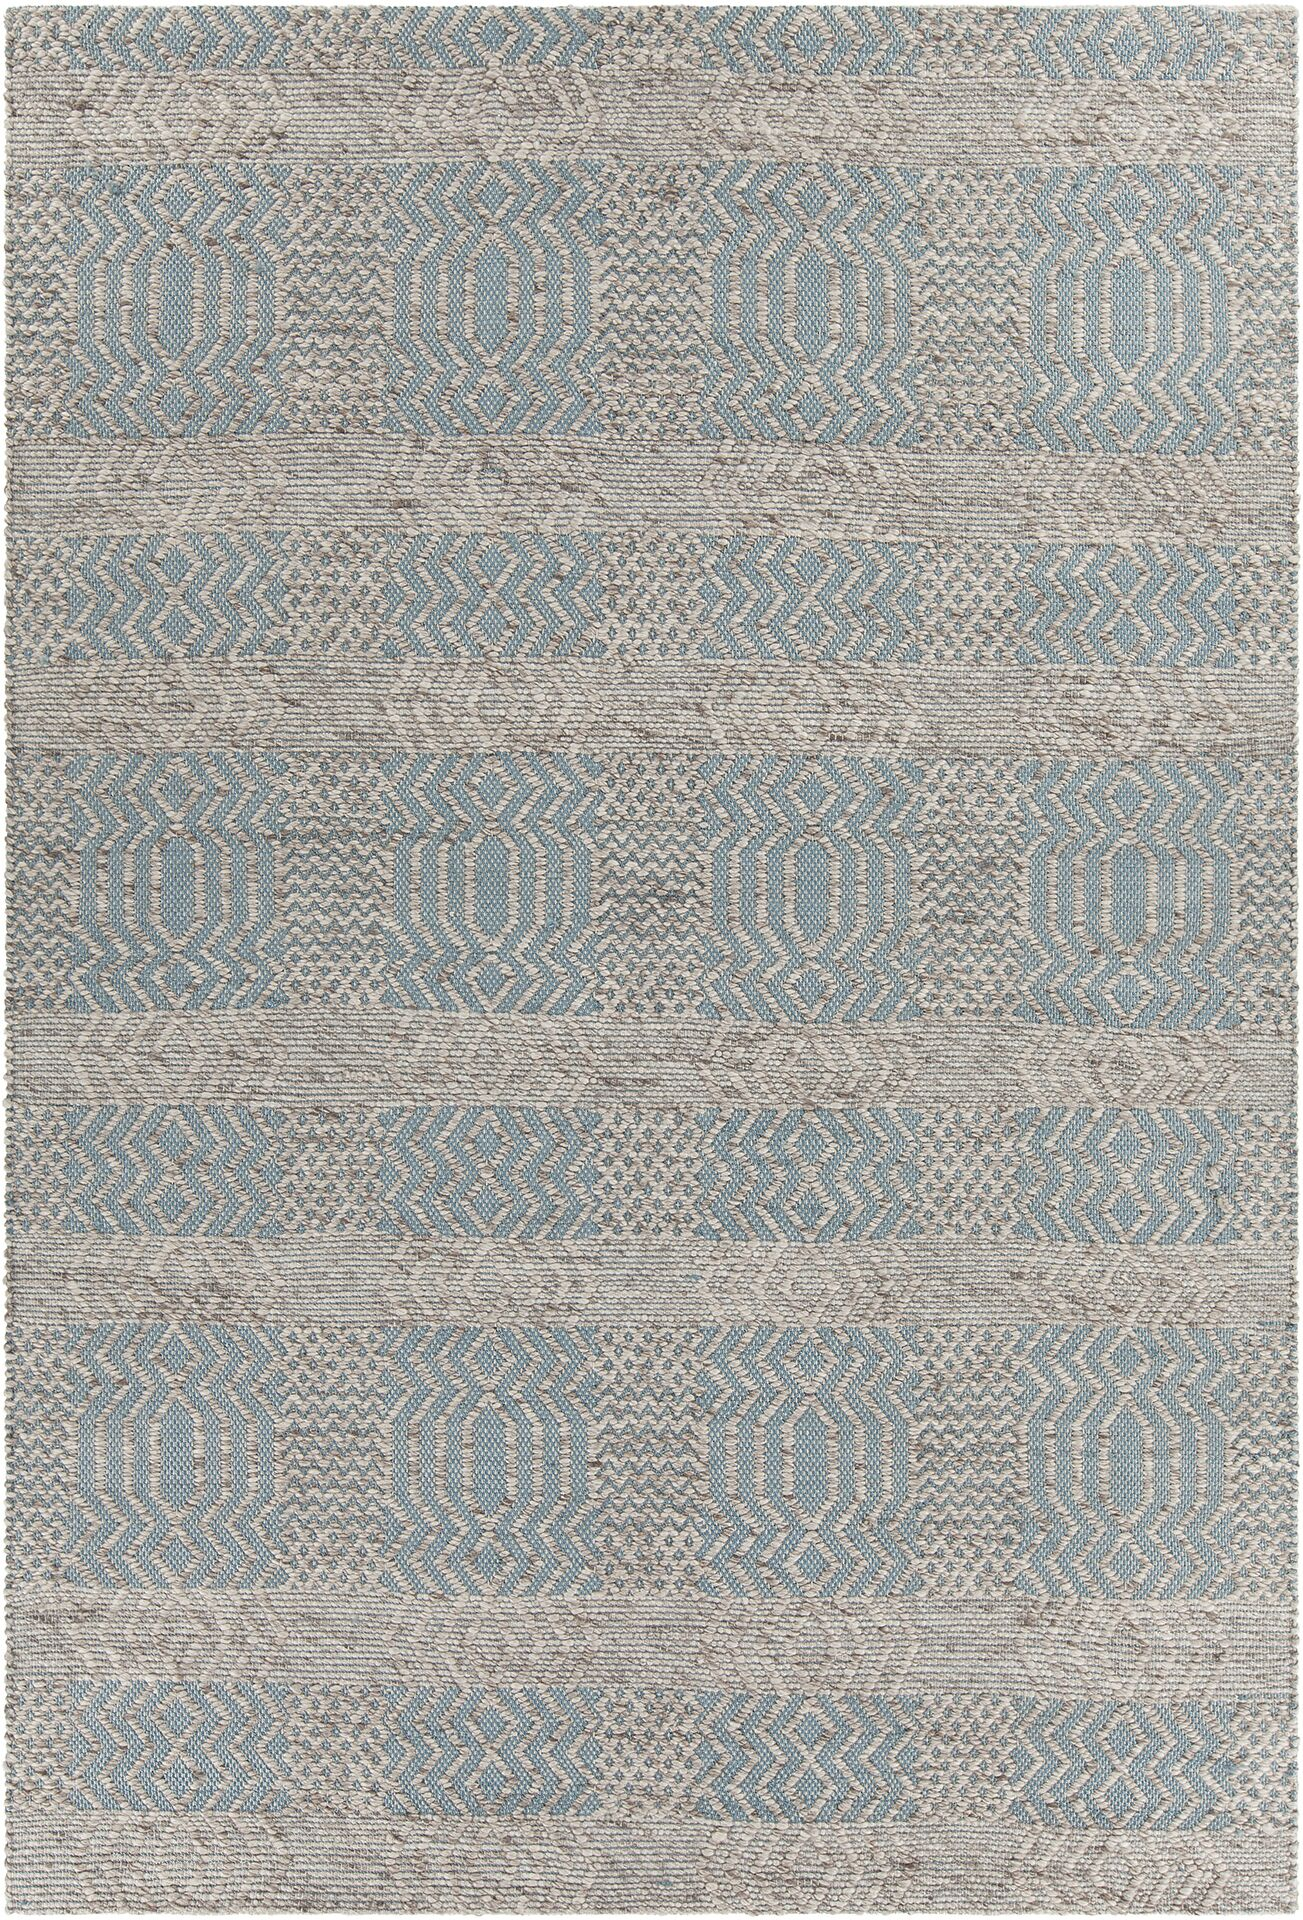 Patwin Patterned Contemporary Blue/Natural Area Rug Rug Size: 7'9